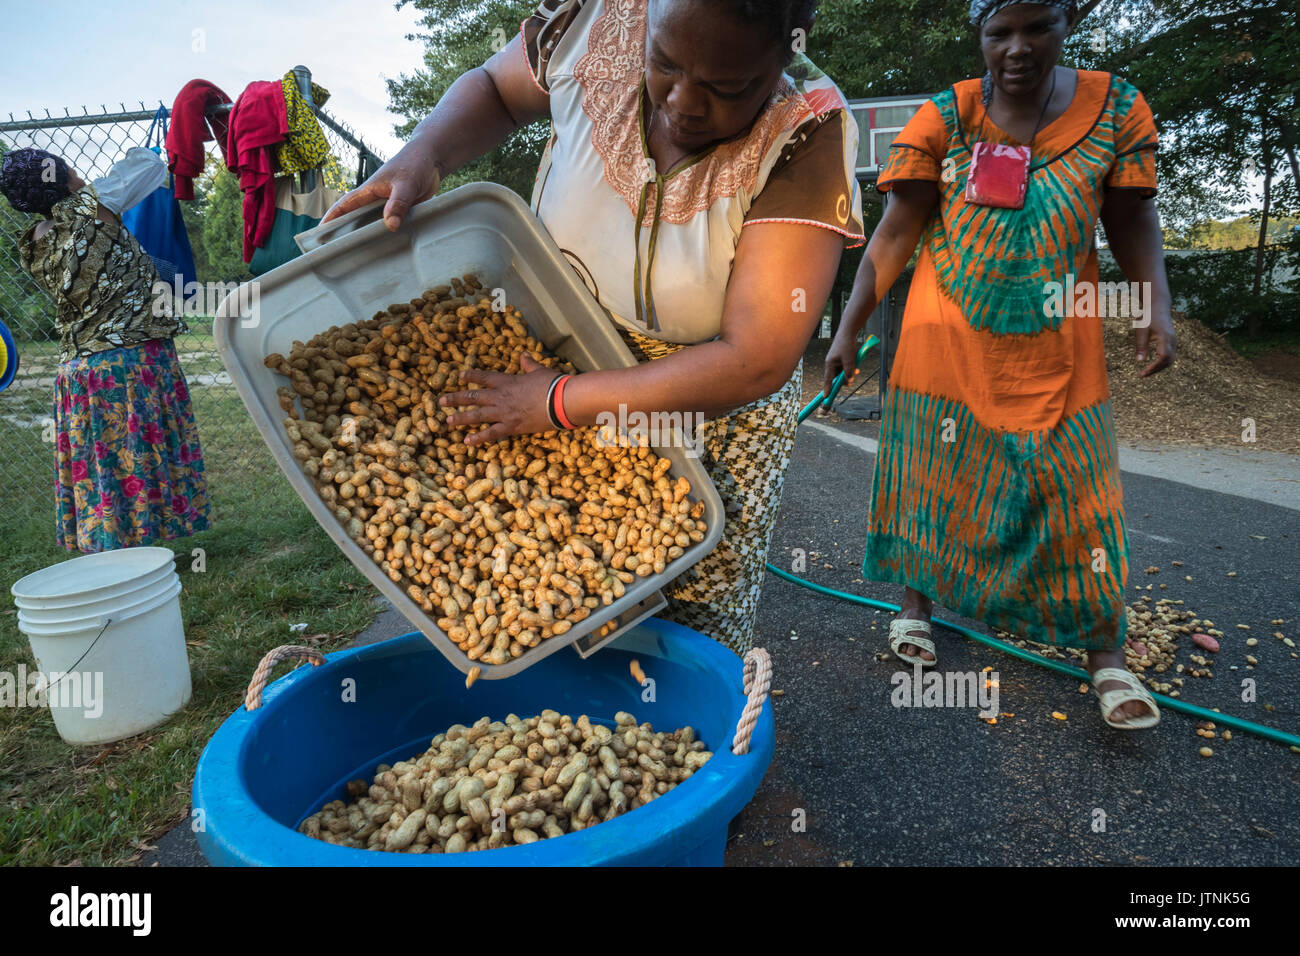 Refugees from Burundi harvested peanuts on an urban garden plot in Decatur, GA.  They sell their produce through Global Growers. - Stock Image